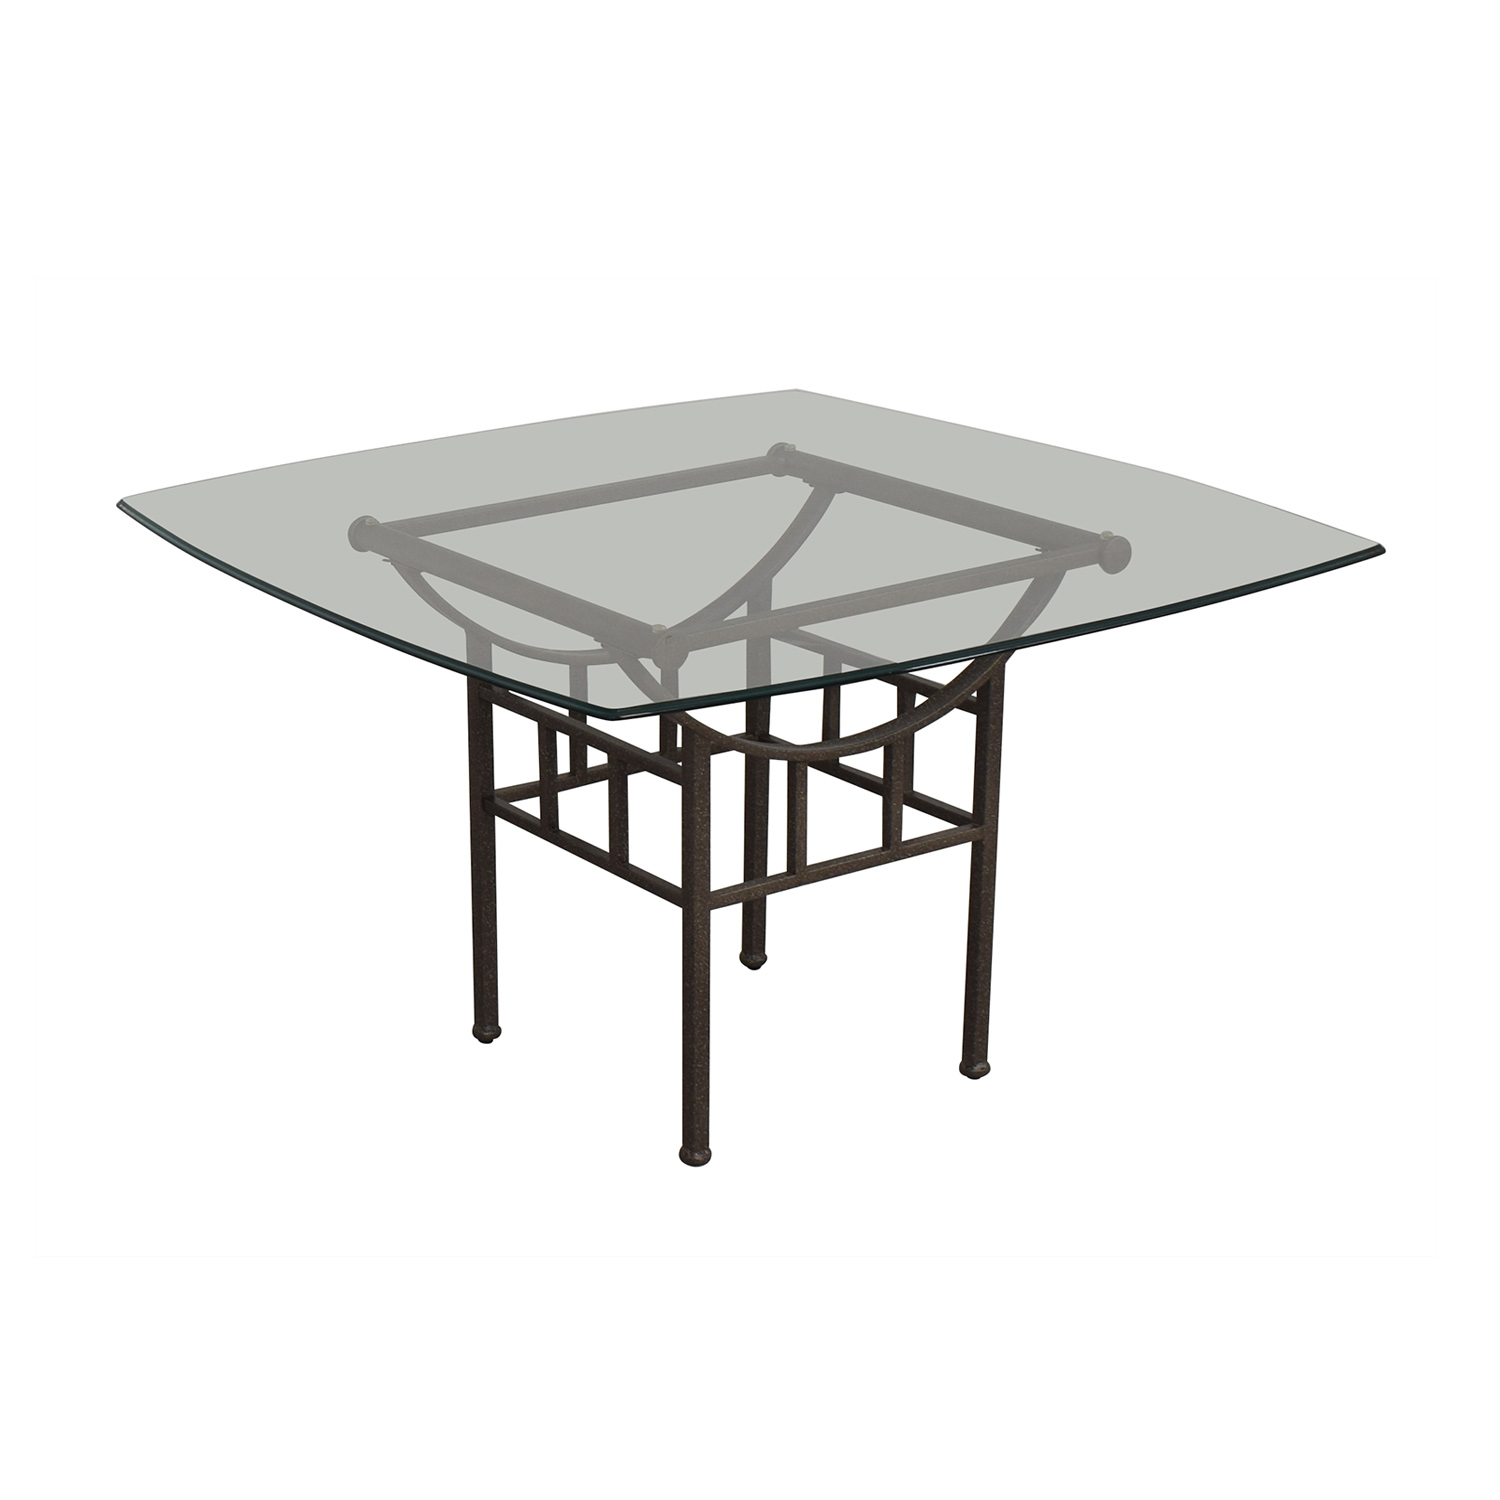 Macy's Dining Table / Dinner Tables